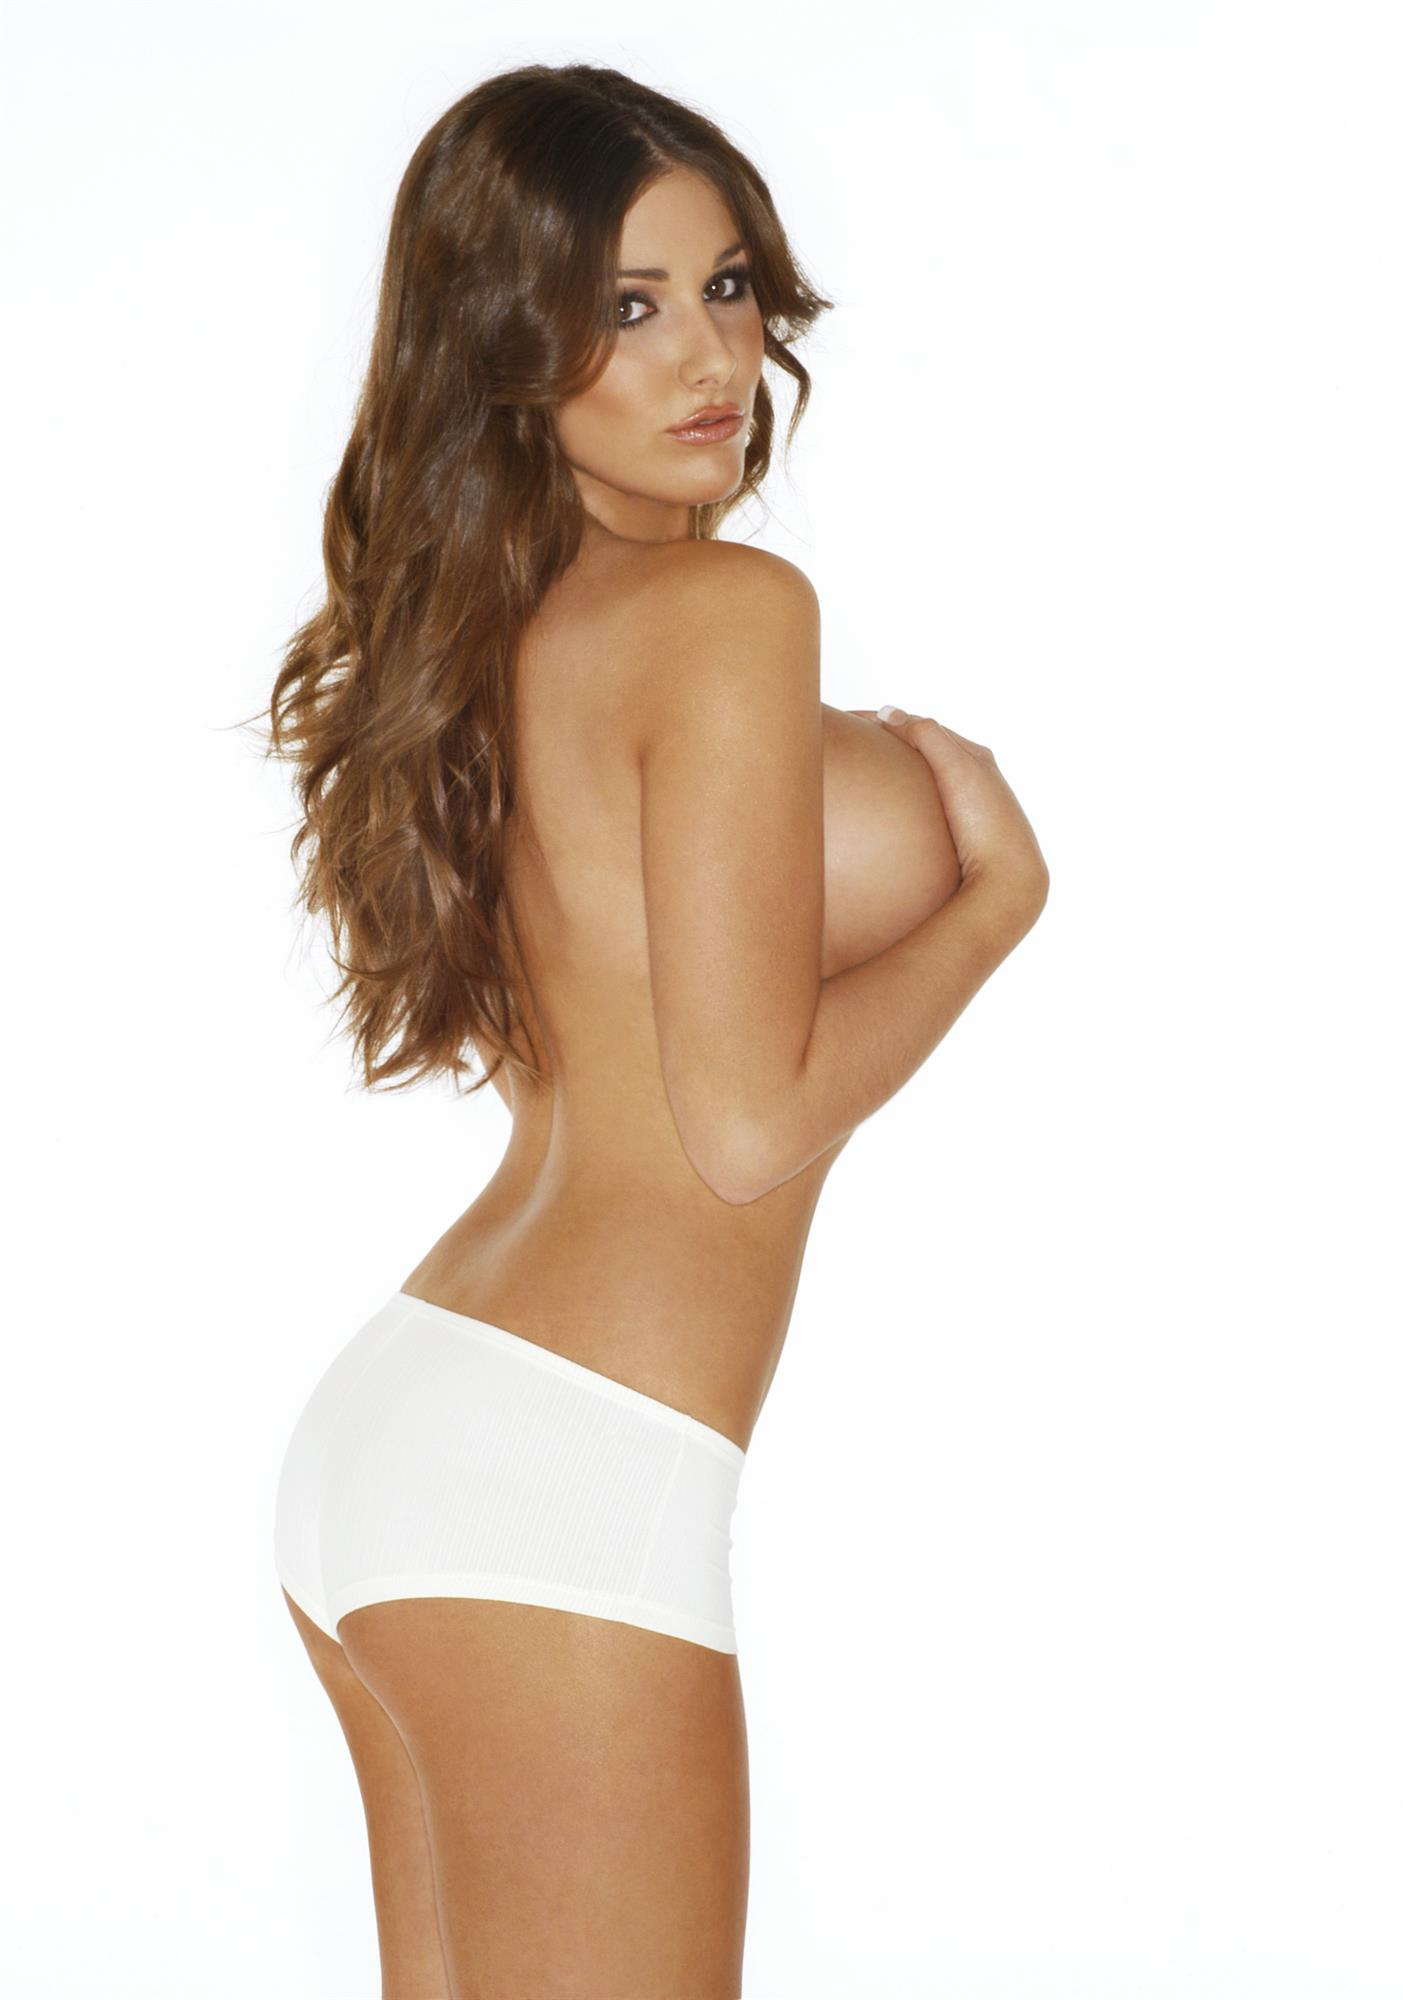 Lucy Pinder Nude Pictures Rating  95310-1705